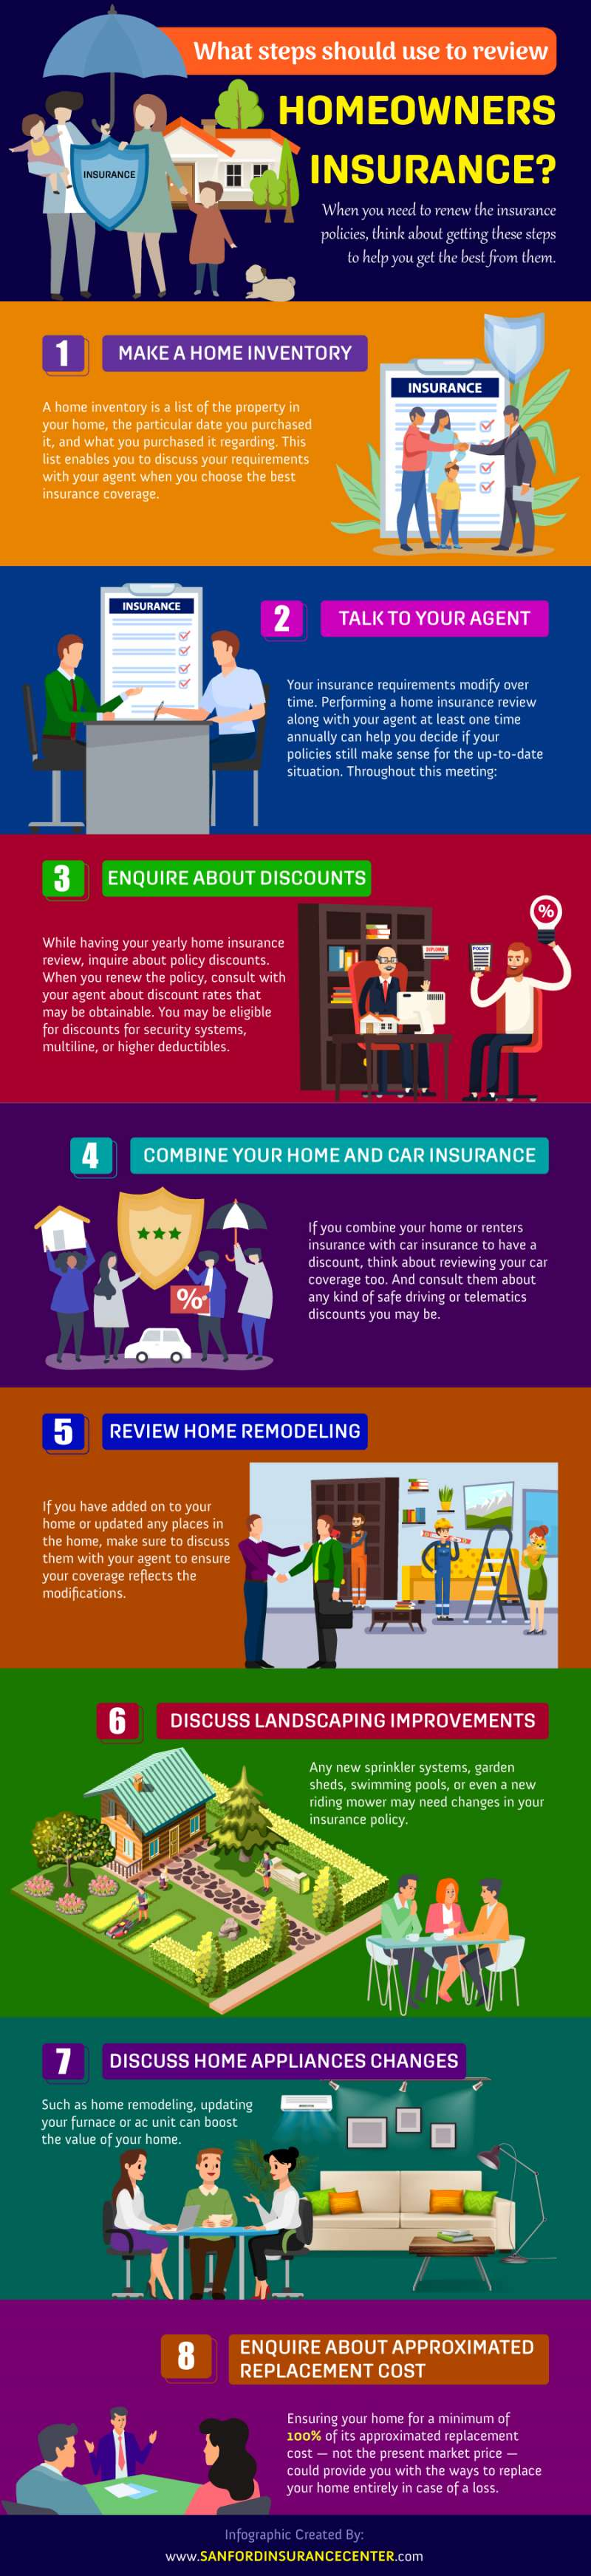 What steps should use to review homeowners insurance?